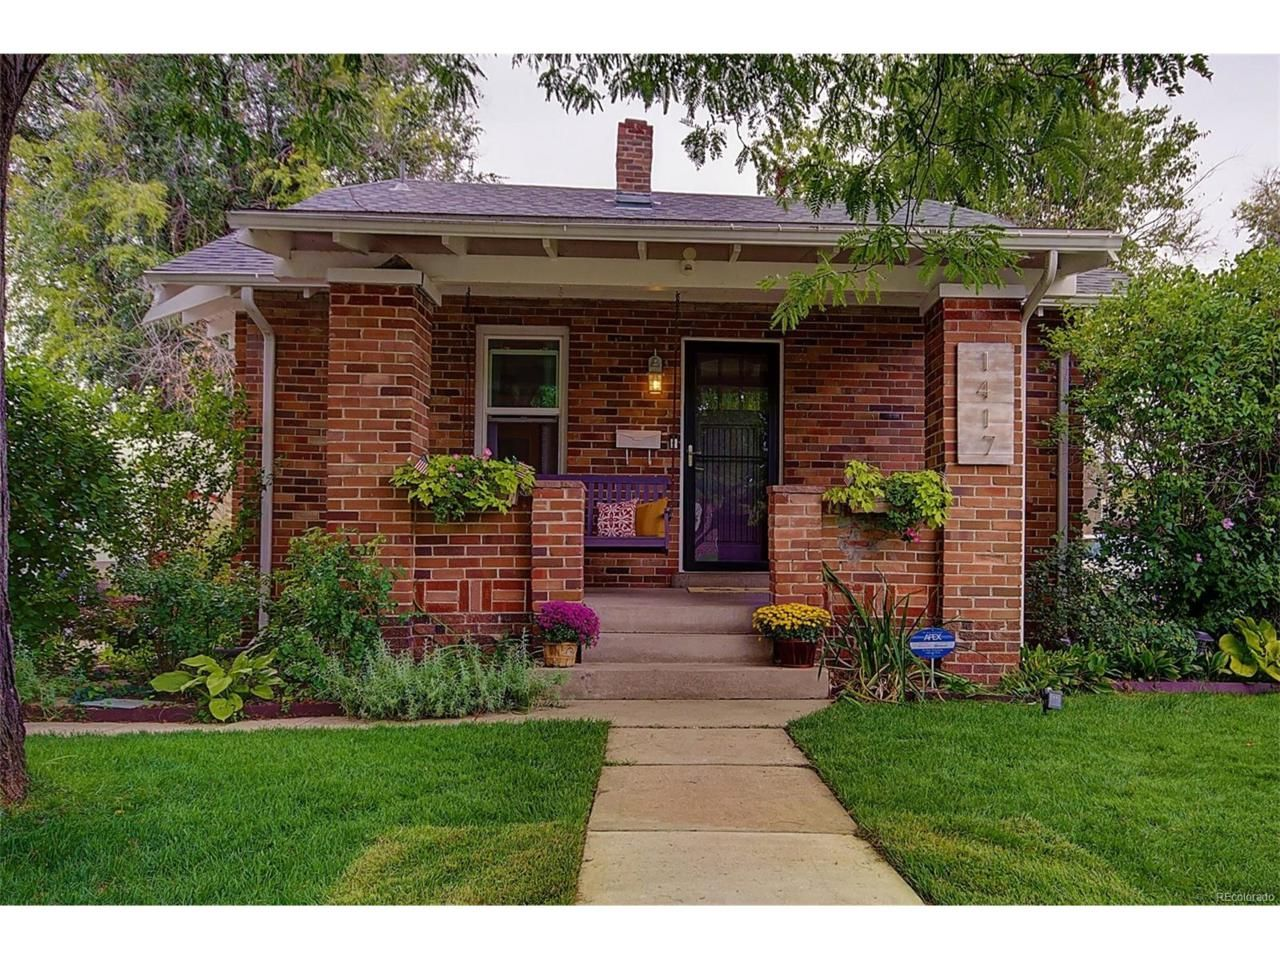 1417 Rosemary St, Denver, CO 80220 - Recently Sold | Trulia